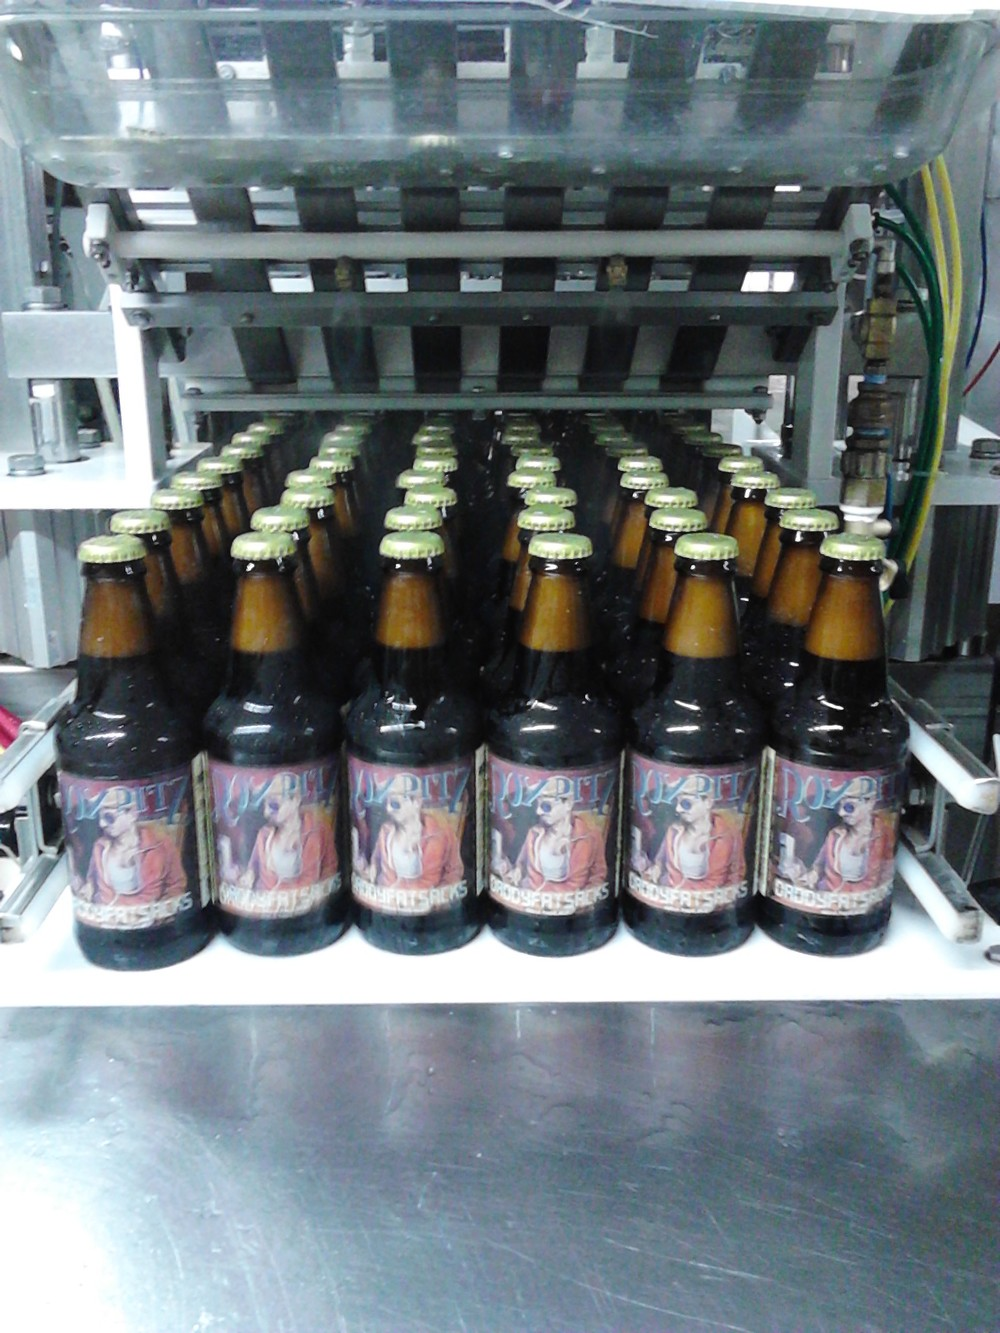 Daddy Fat Sacks coming off of the bottling line...